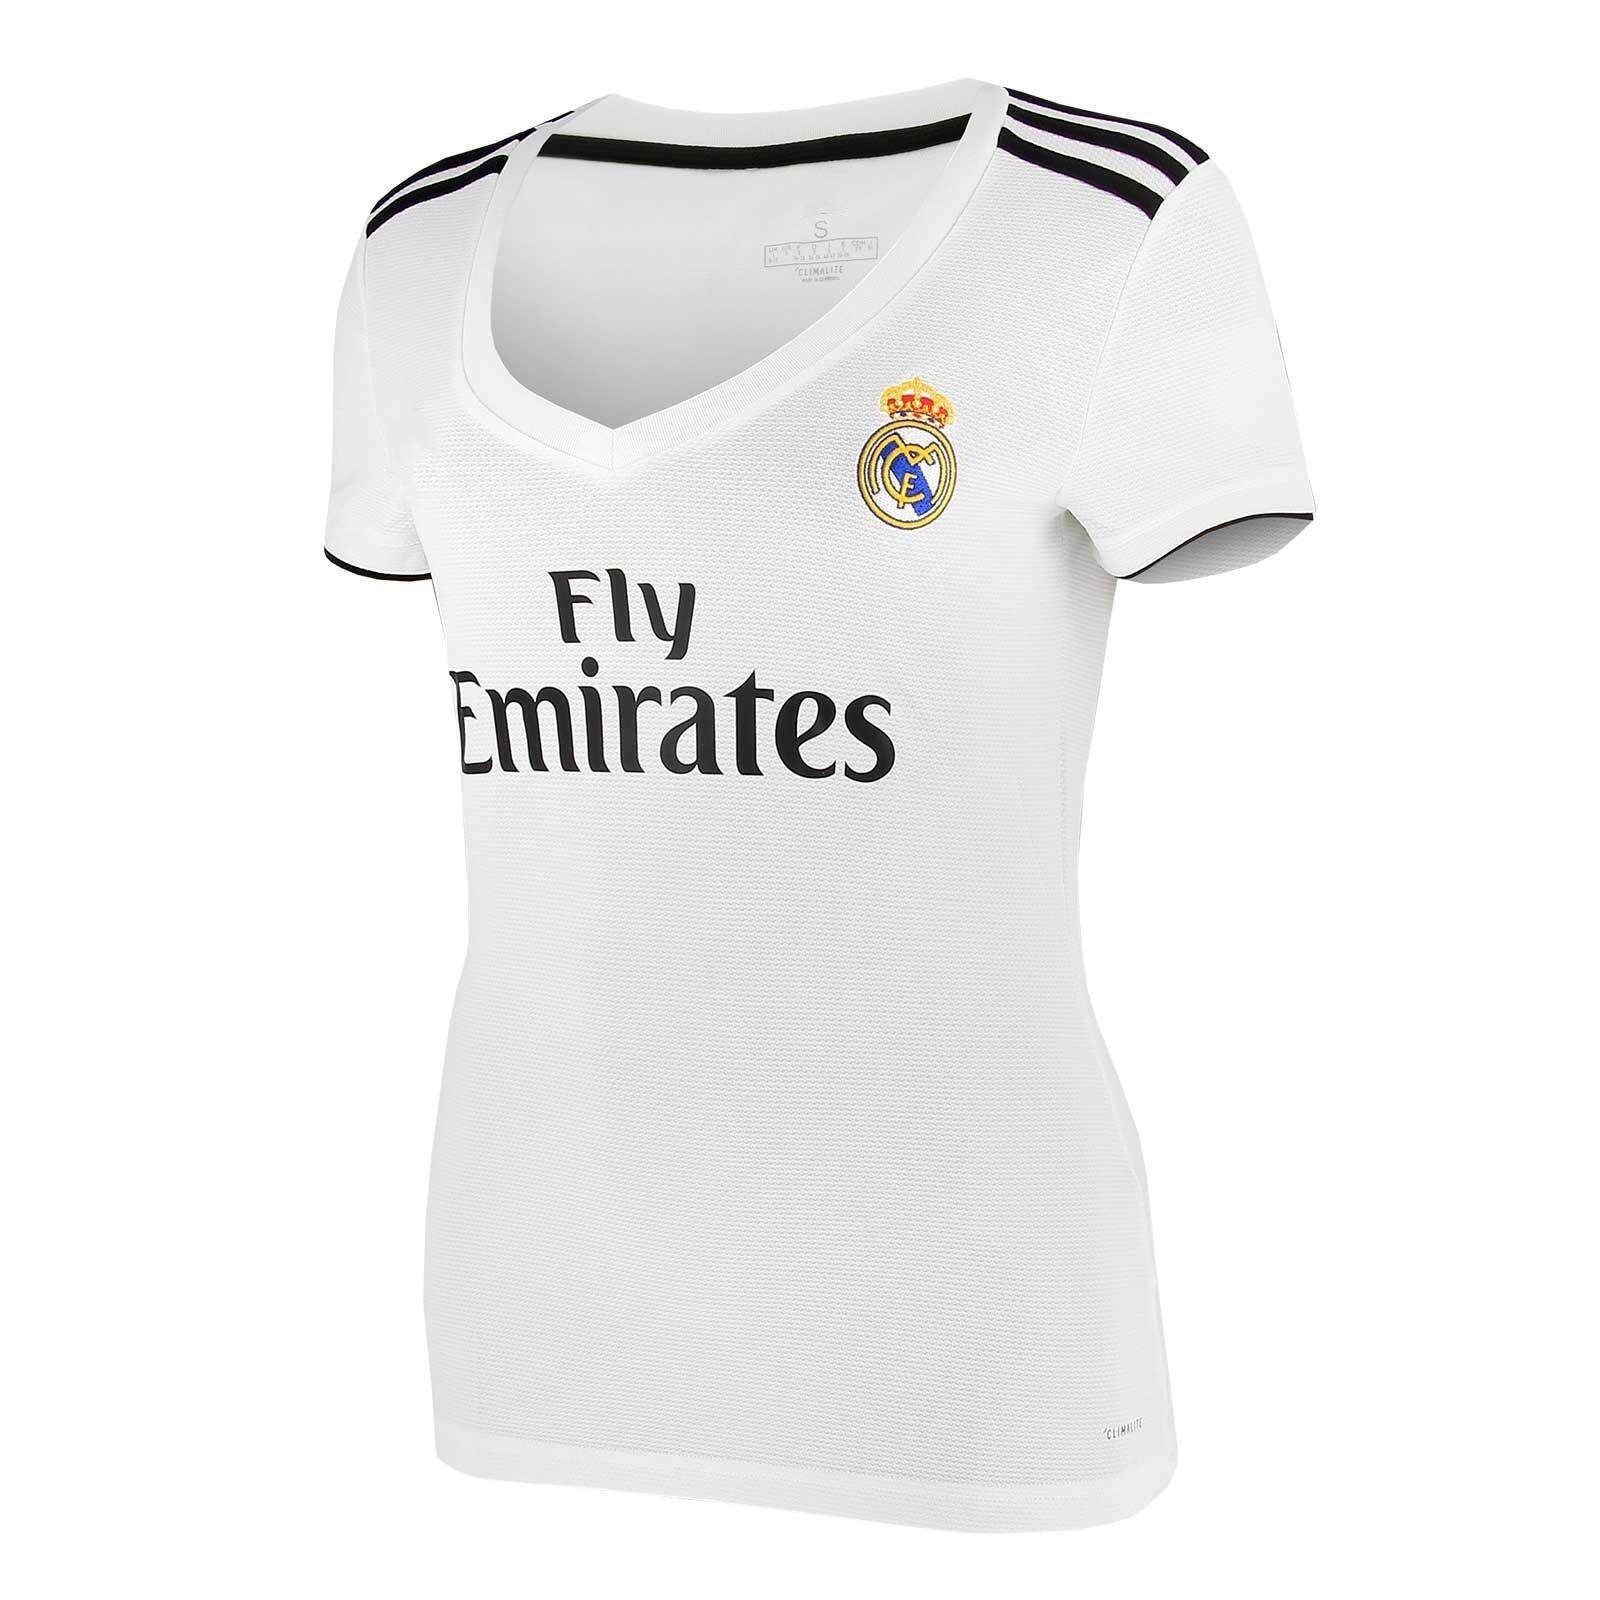 8e21a775 Football Jersey for Women for sale - Womens Football Jersey Online ...